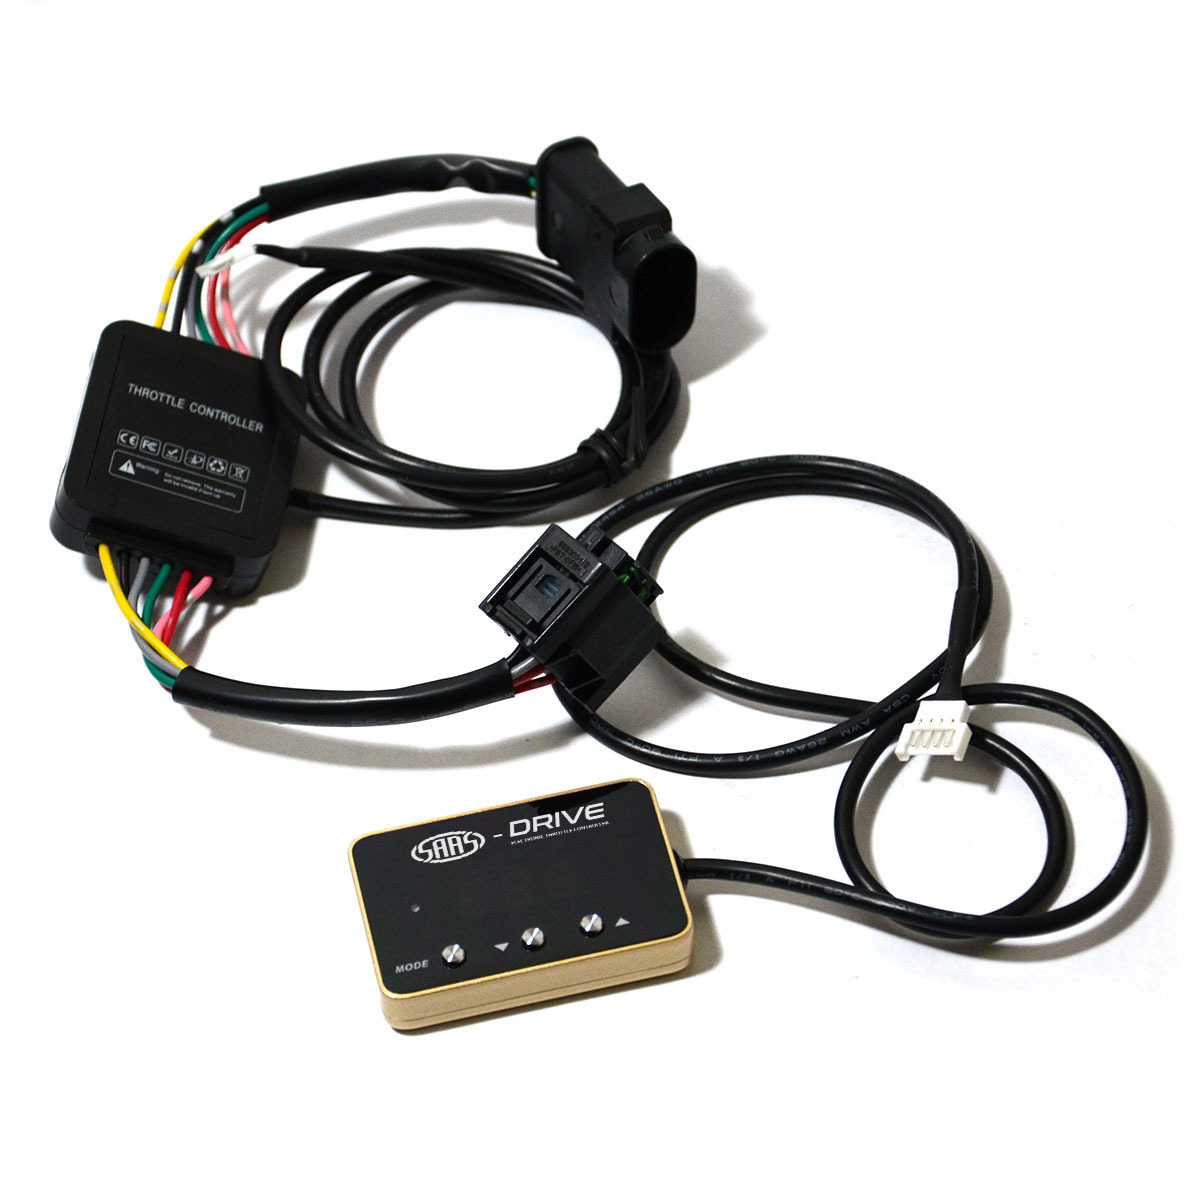 S-Drive Ford Explorer 5th Gen 2011 - 2019 Throttle Controller